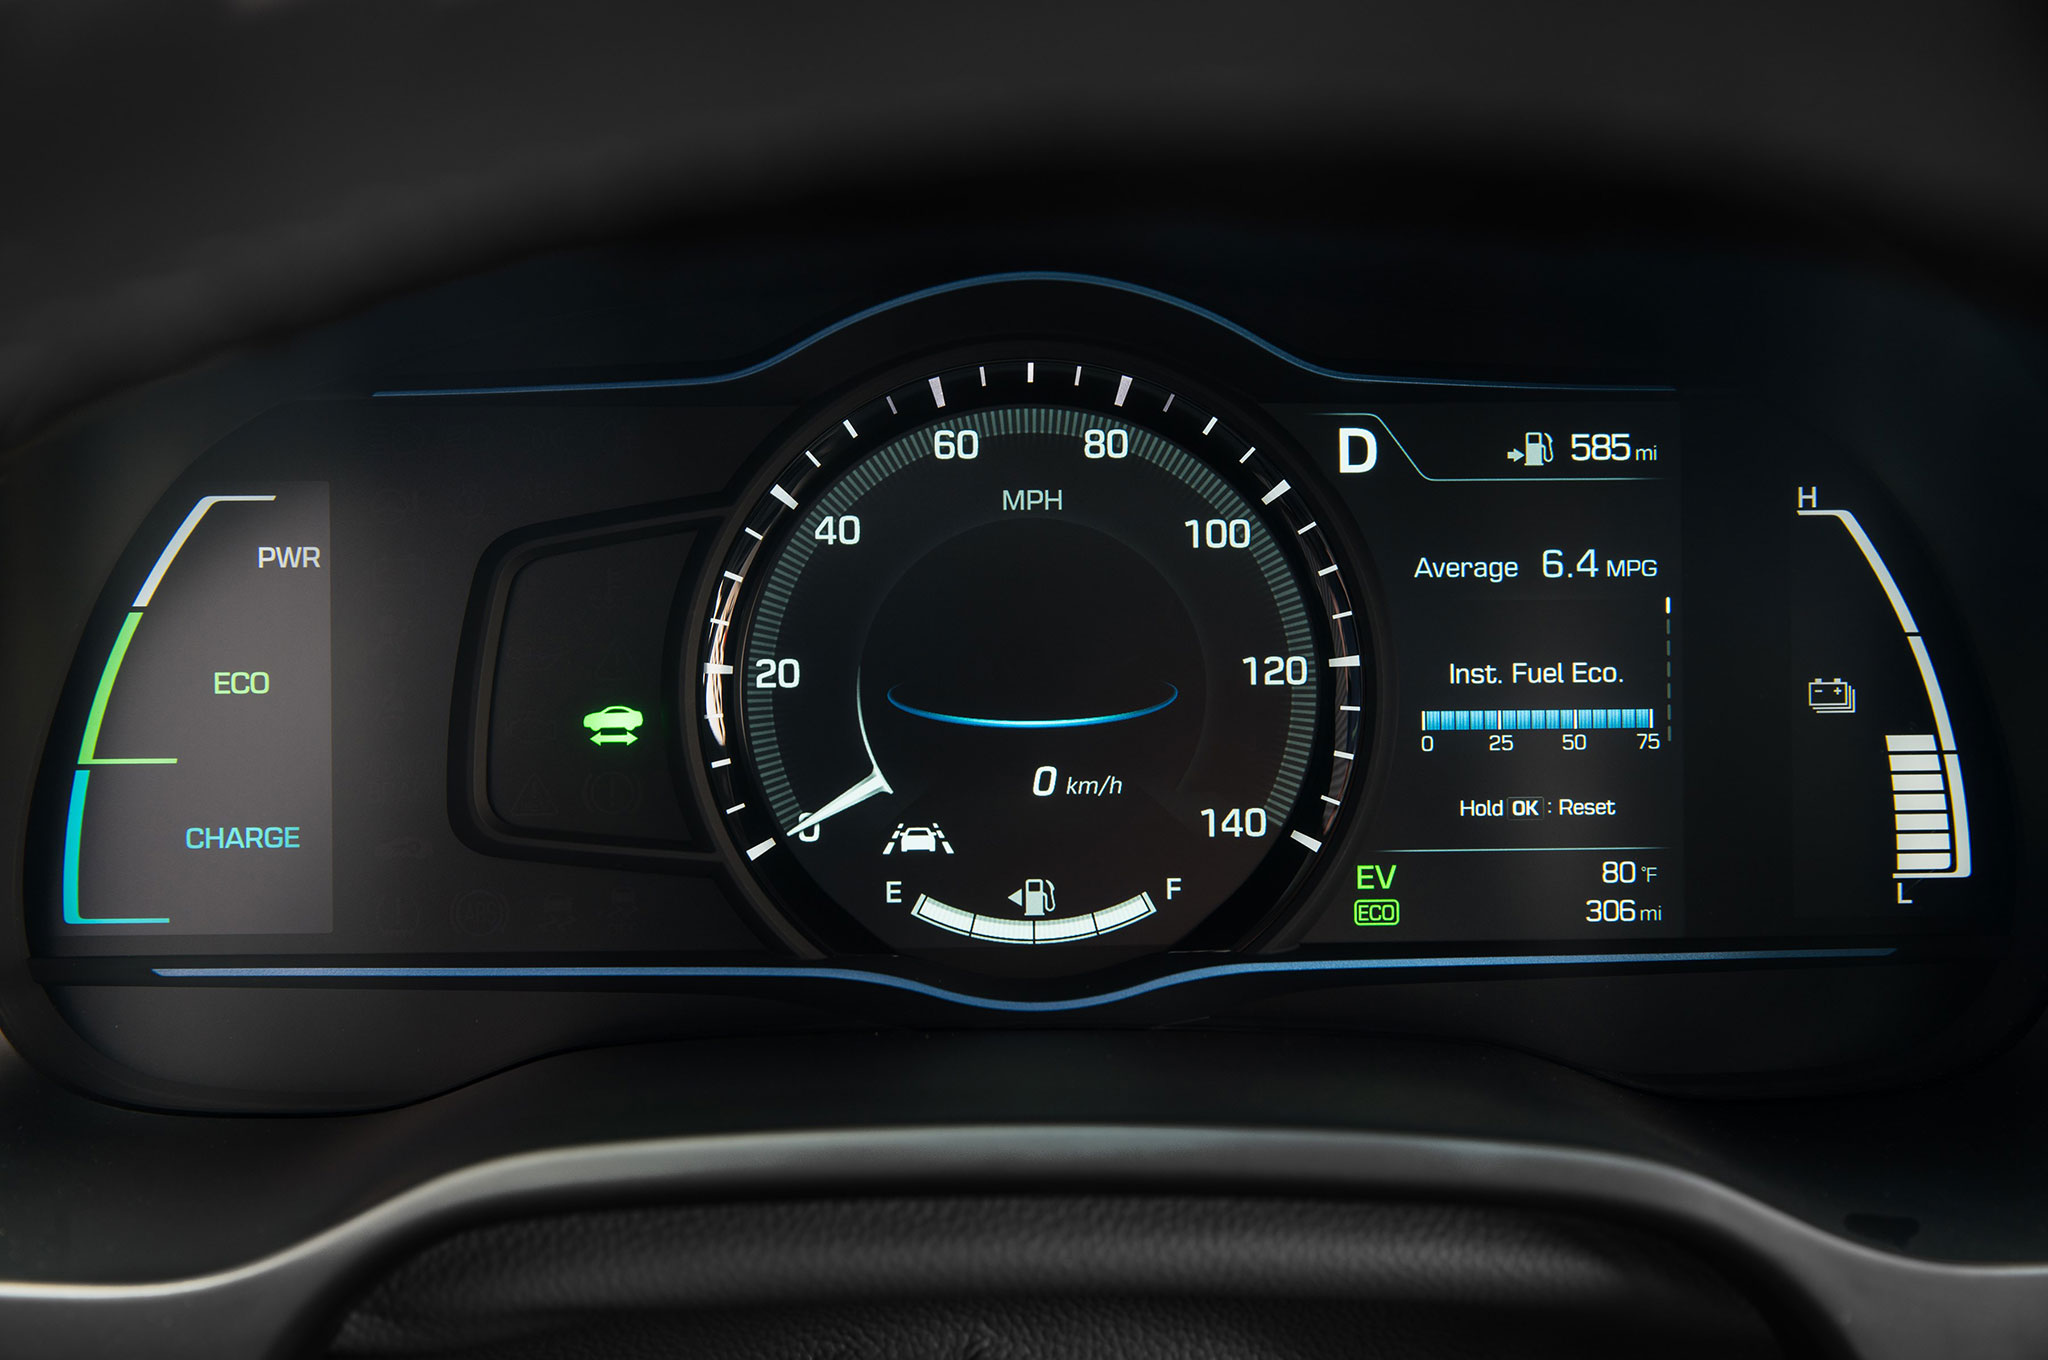 toyota yaris instrument panel guide